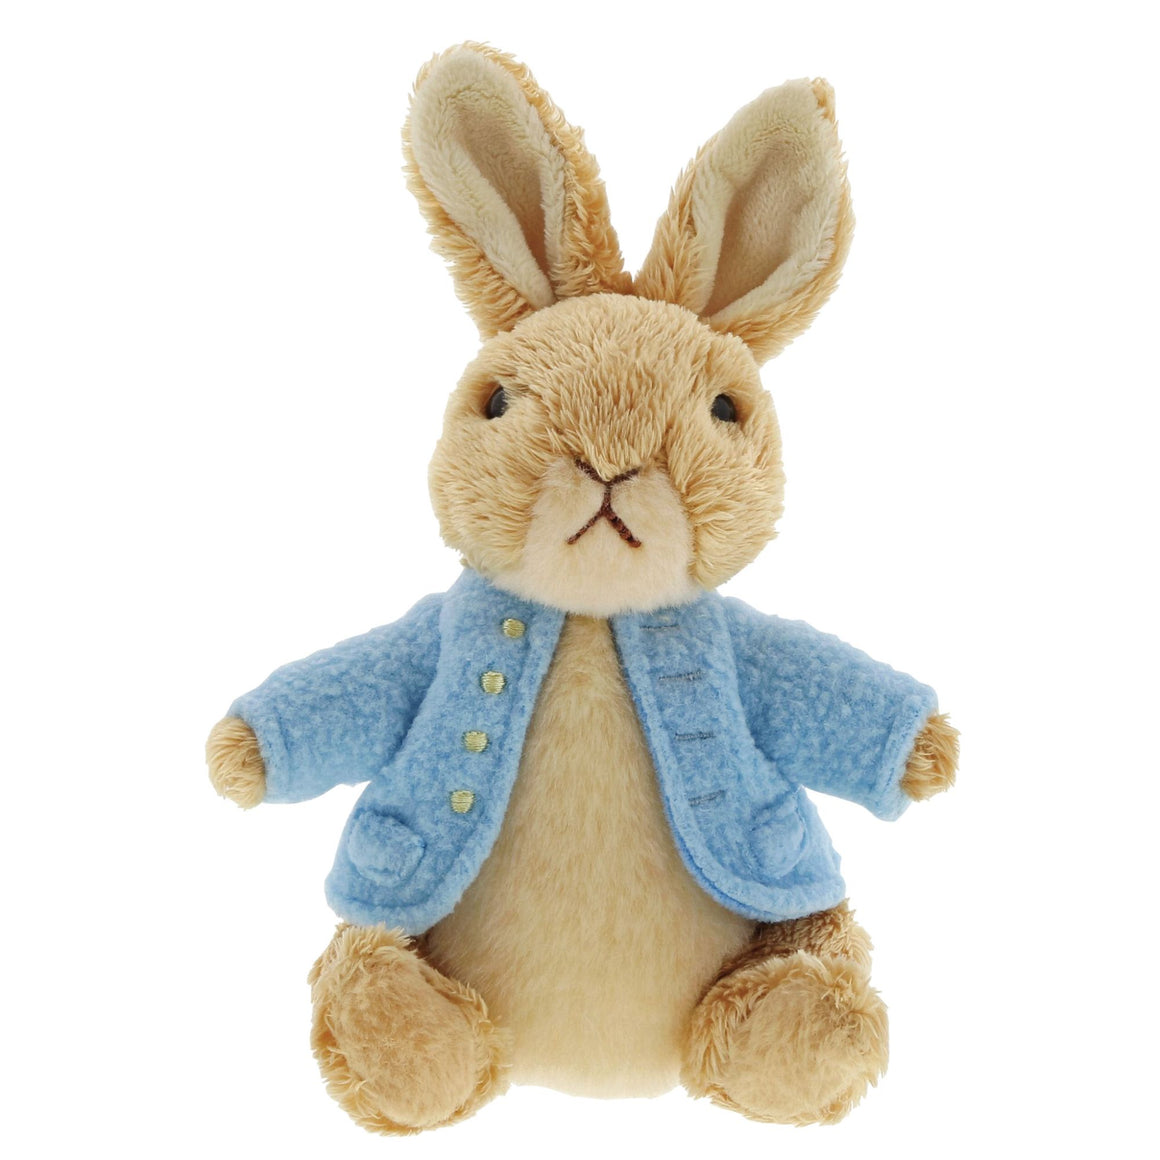 Peter Rabbit Small Soft Toy - Peter Rabbit by Gund